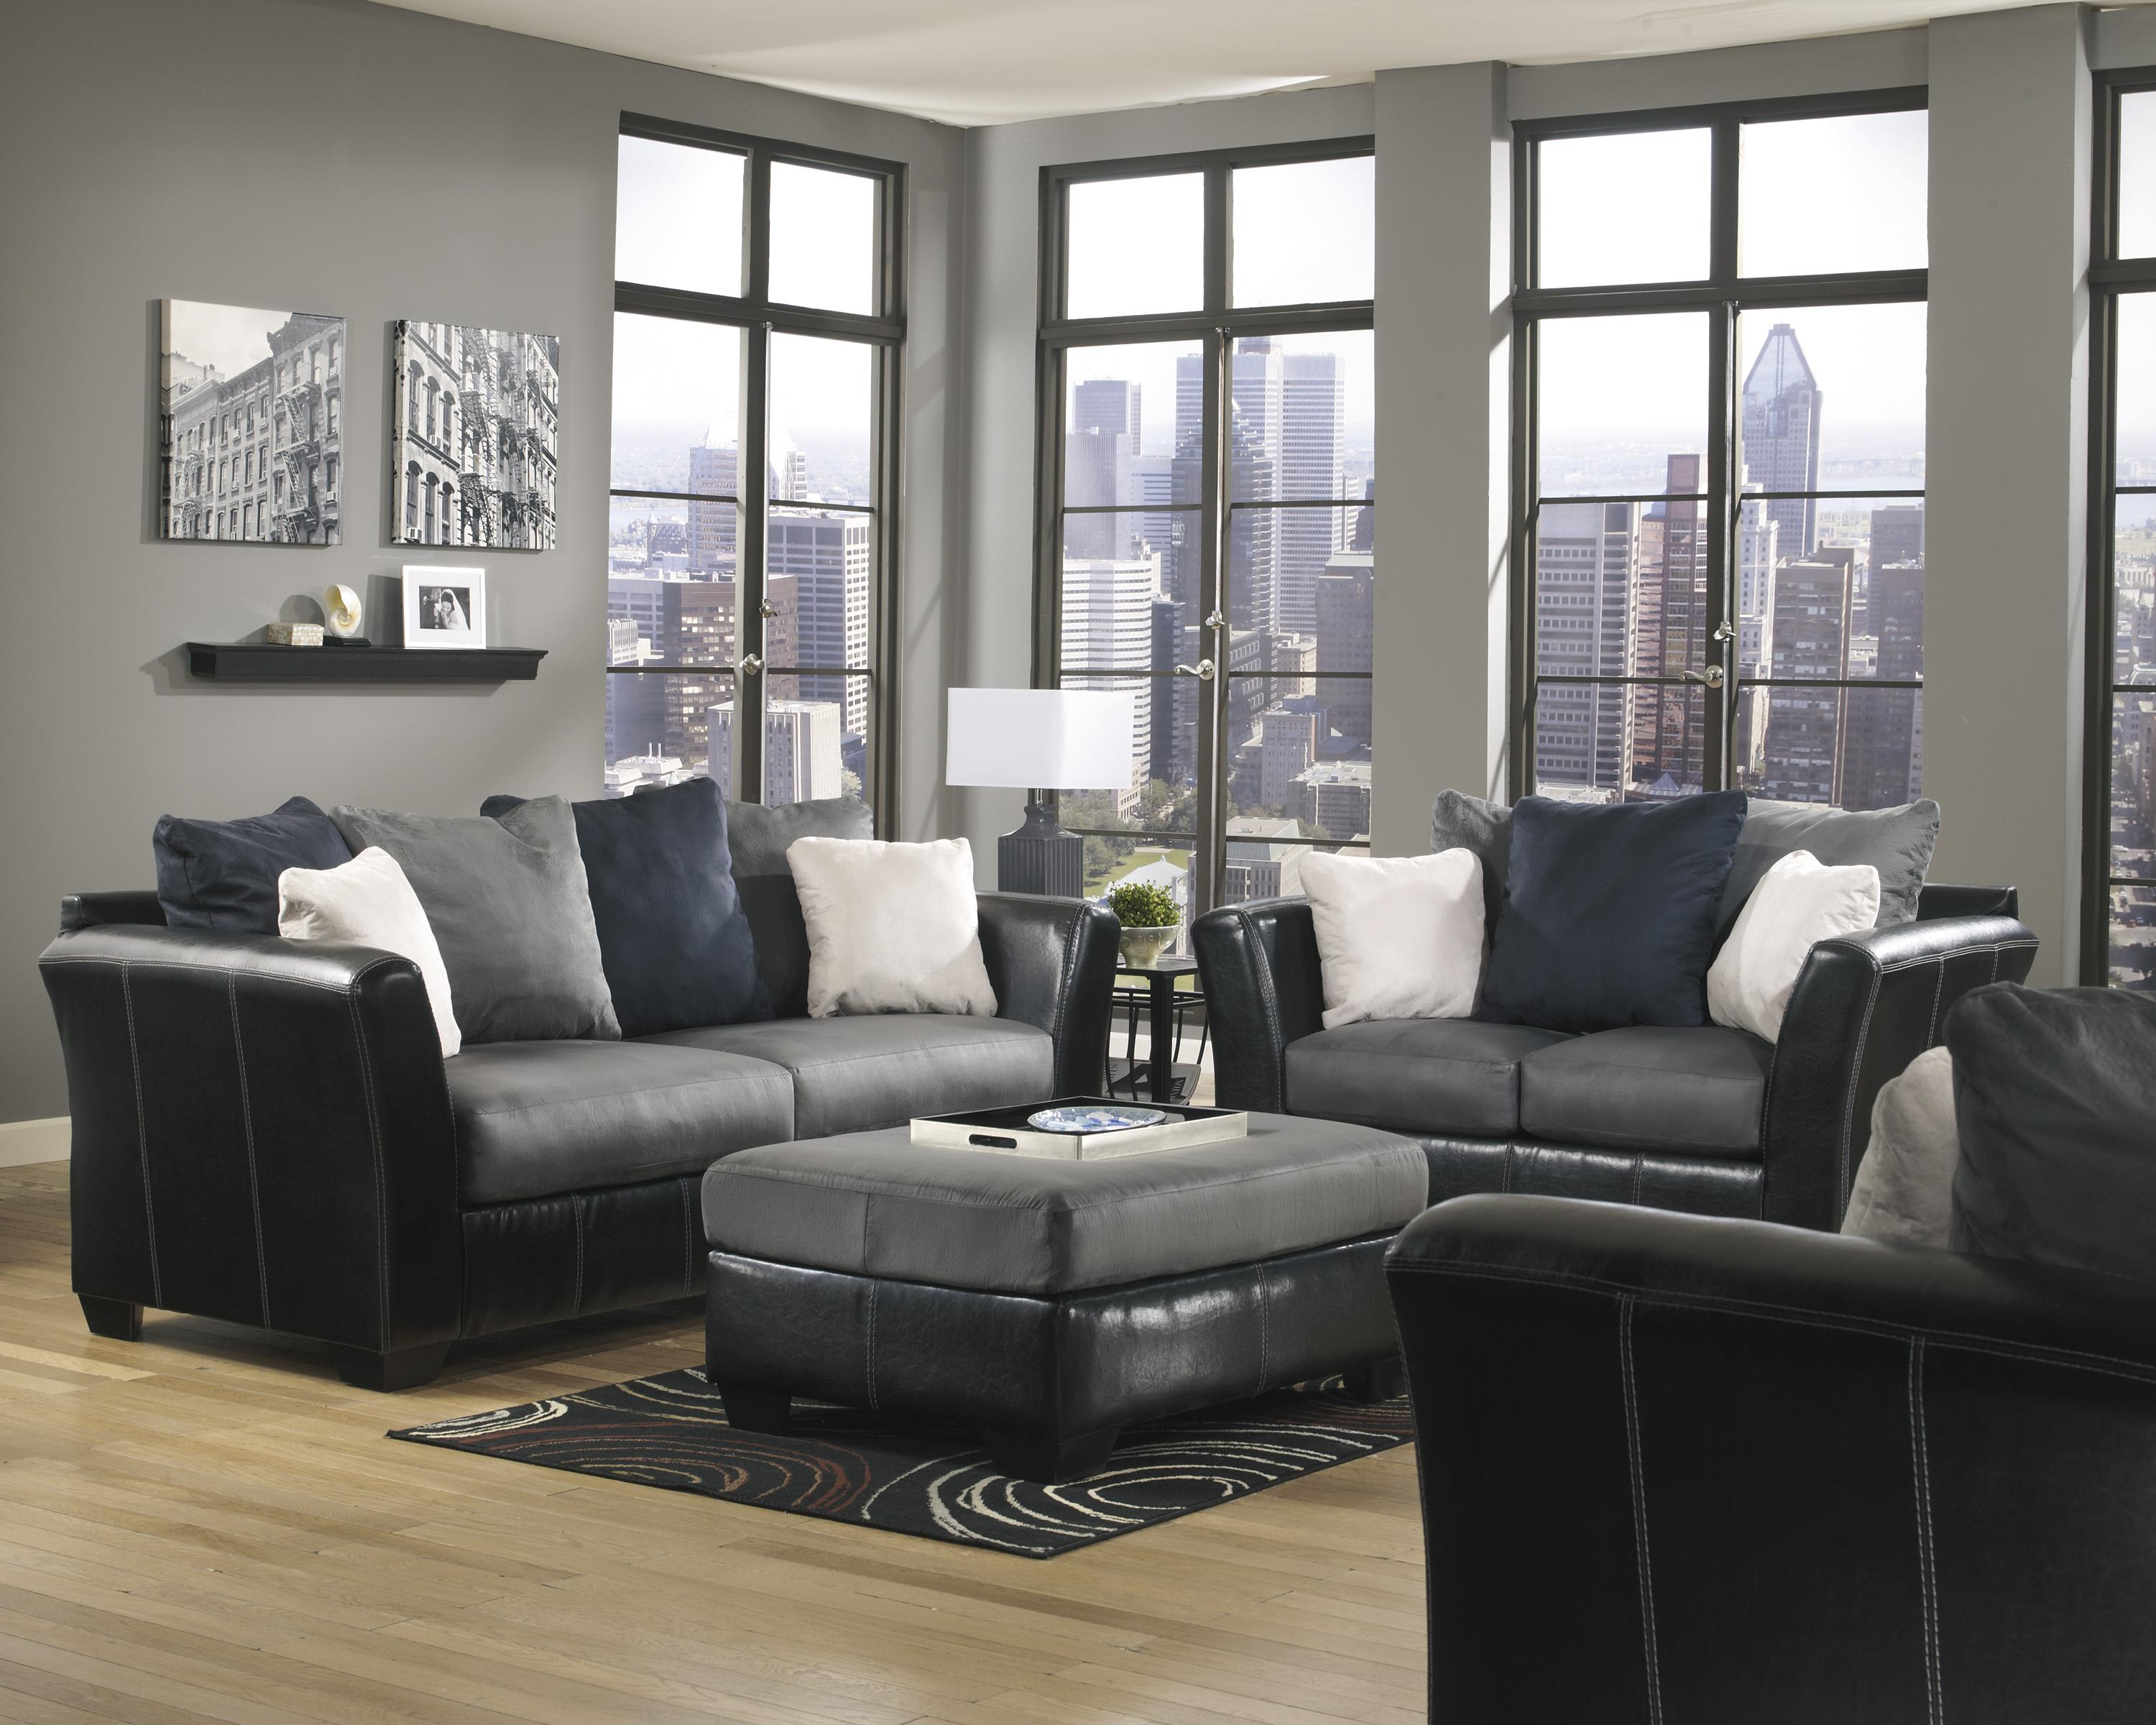 Ashley/Benchcraft Masoli - Cobblestone Stationary Living Room Group - Item Number: 14200 Living Room Group 4